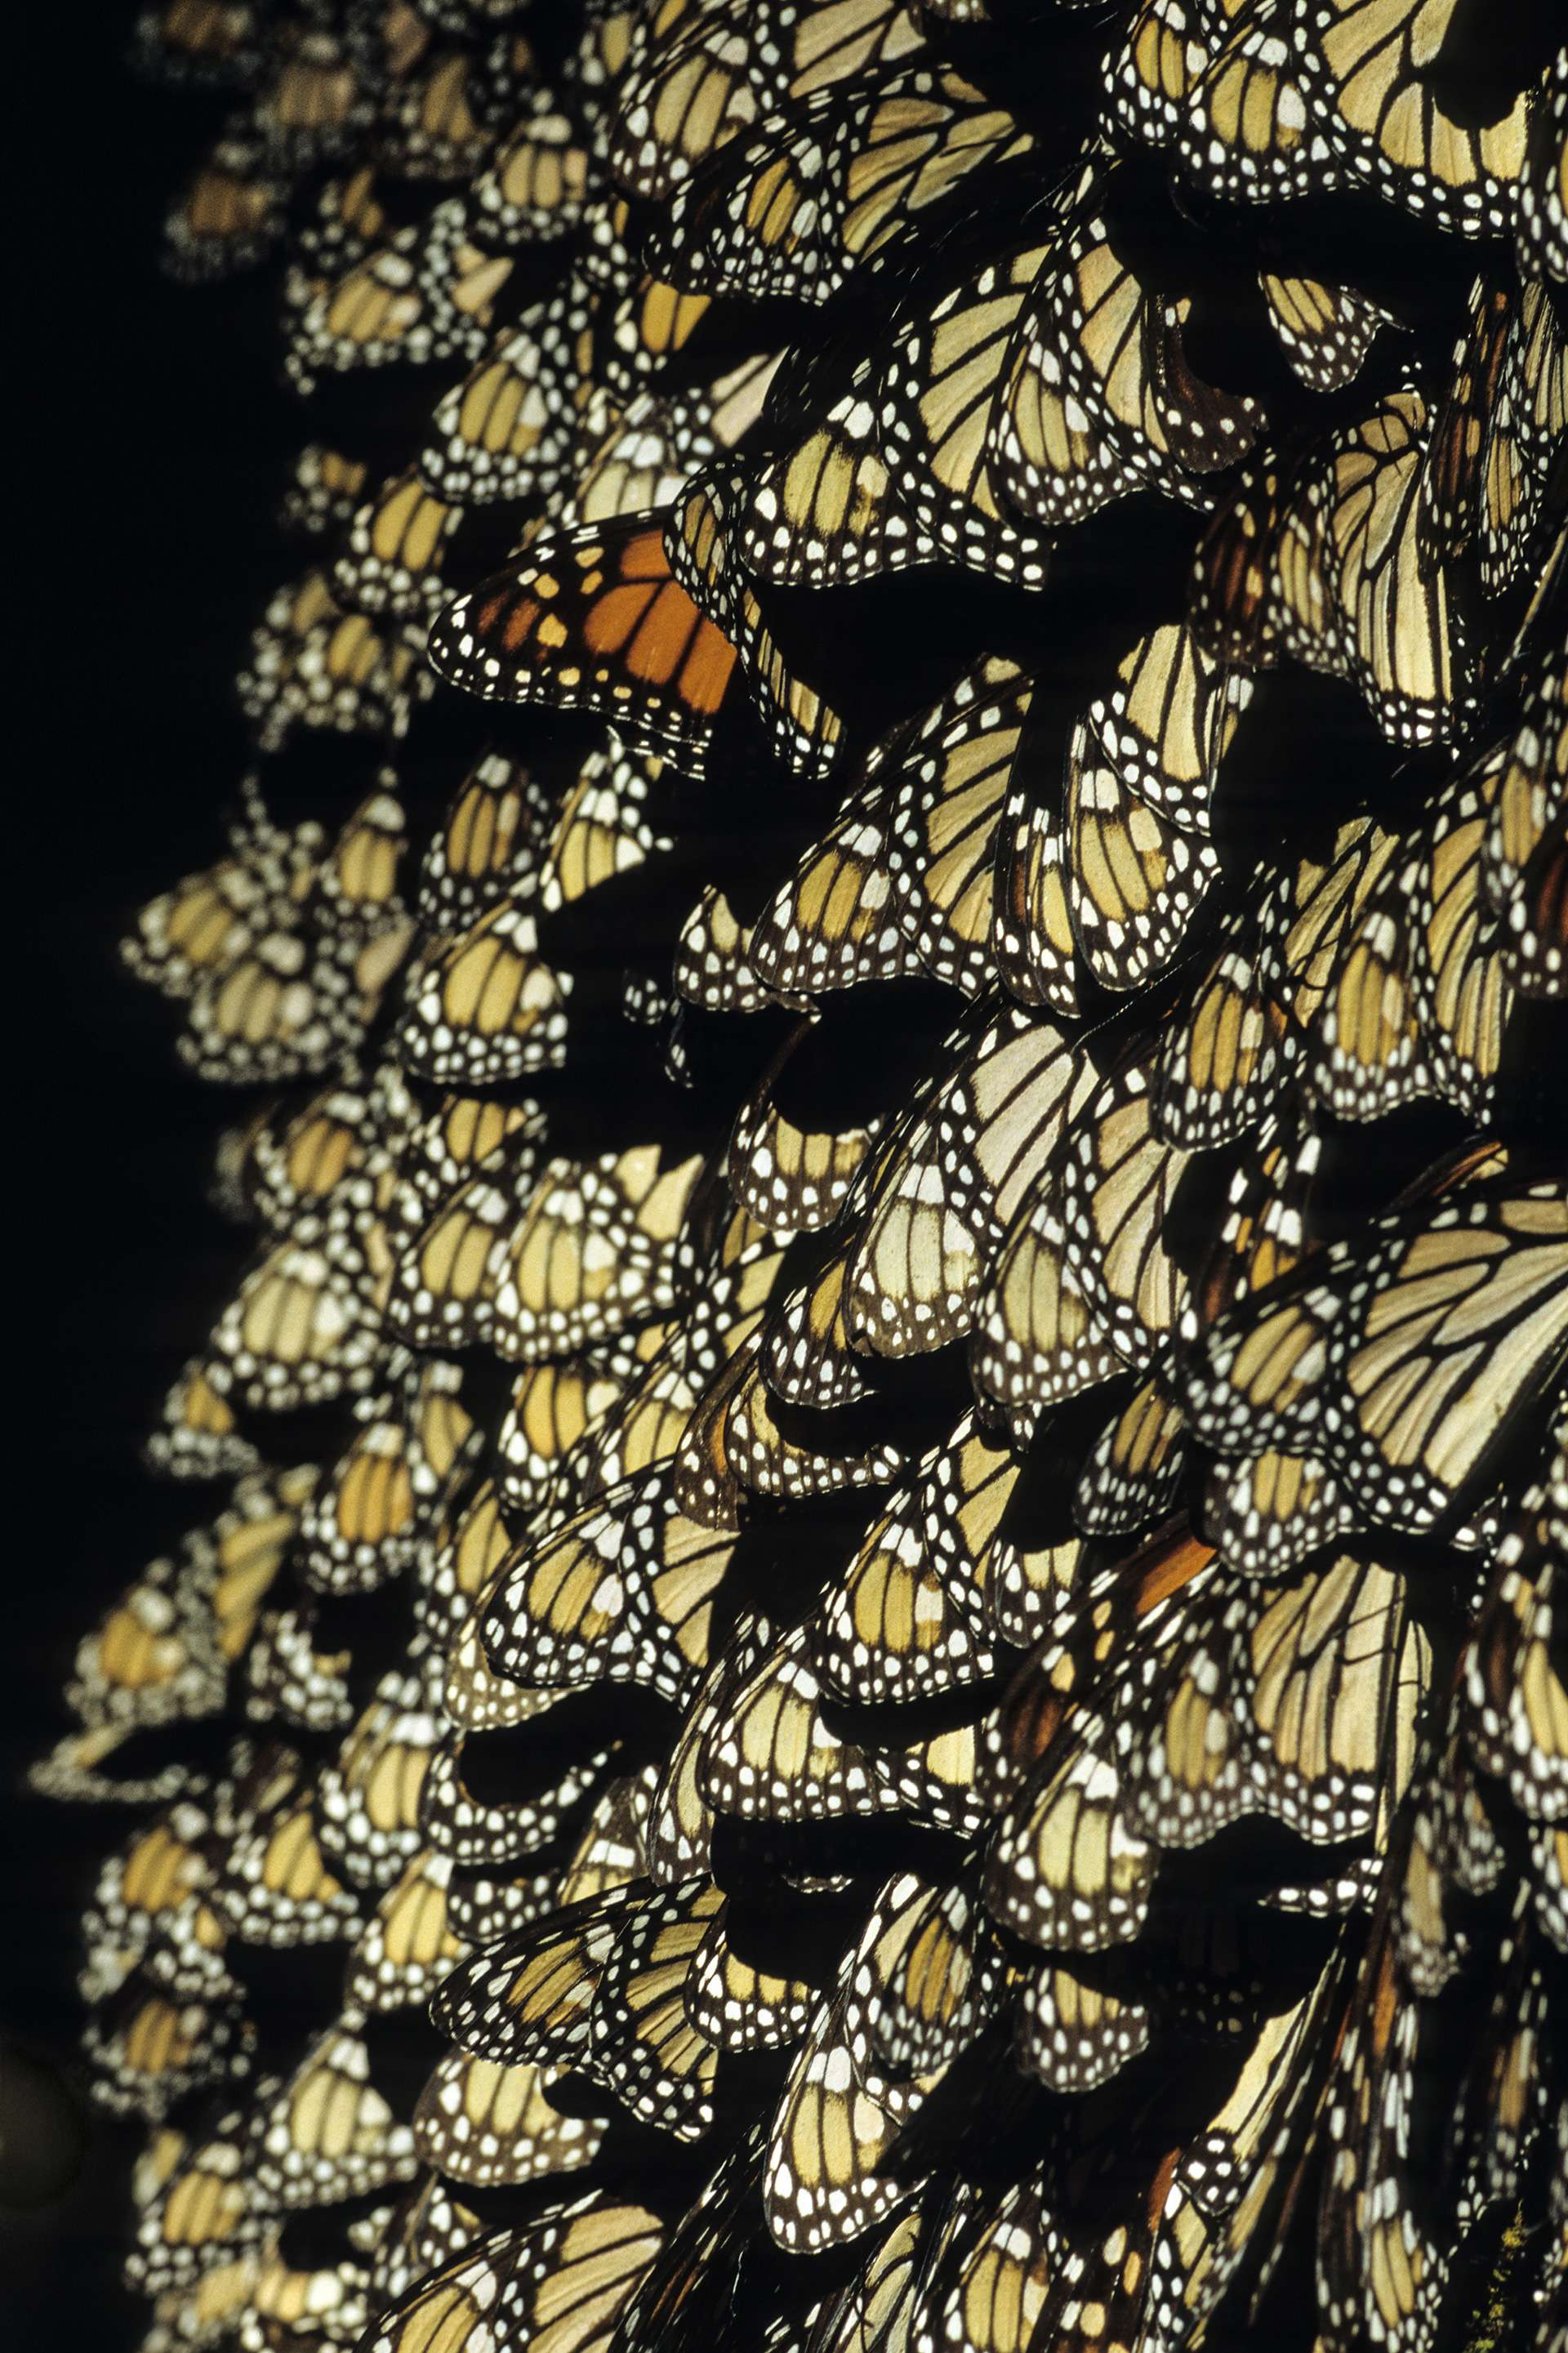 Gilles Martin's photograph of a monarch butterfly from Mexico